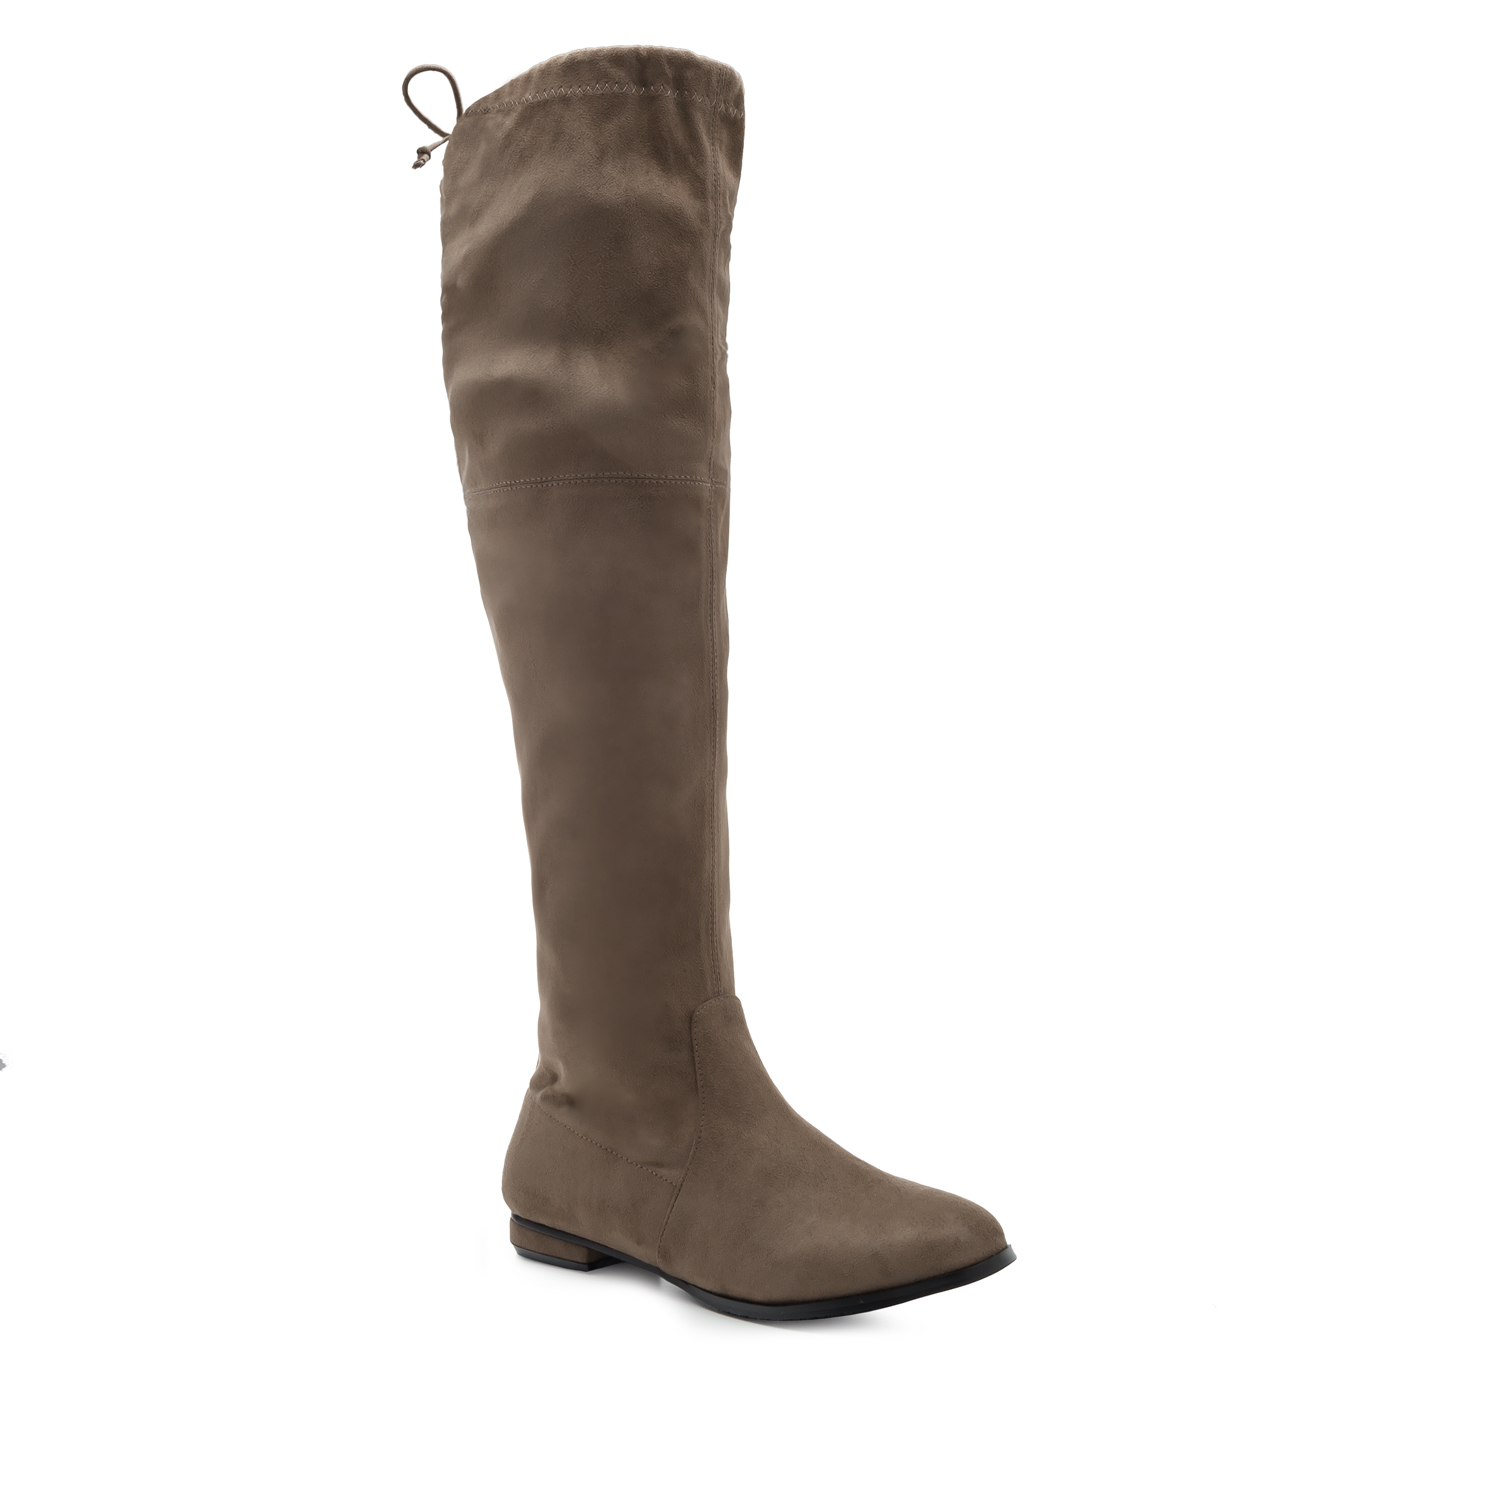 Thigh High Boots in Earth-coloured Suede